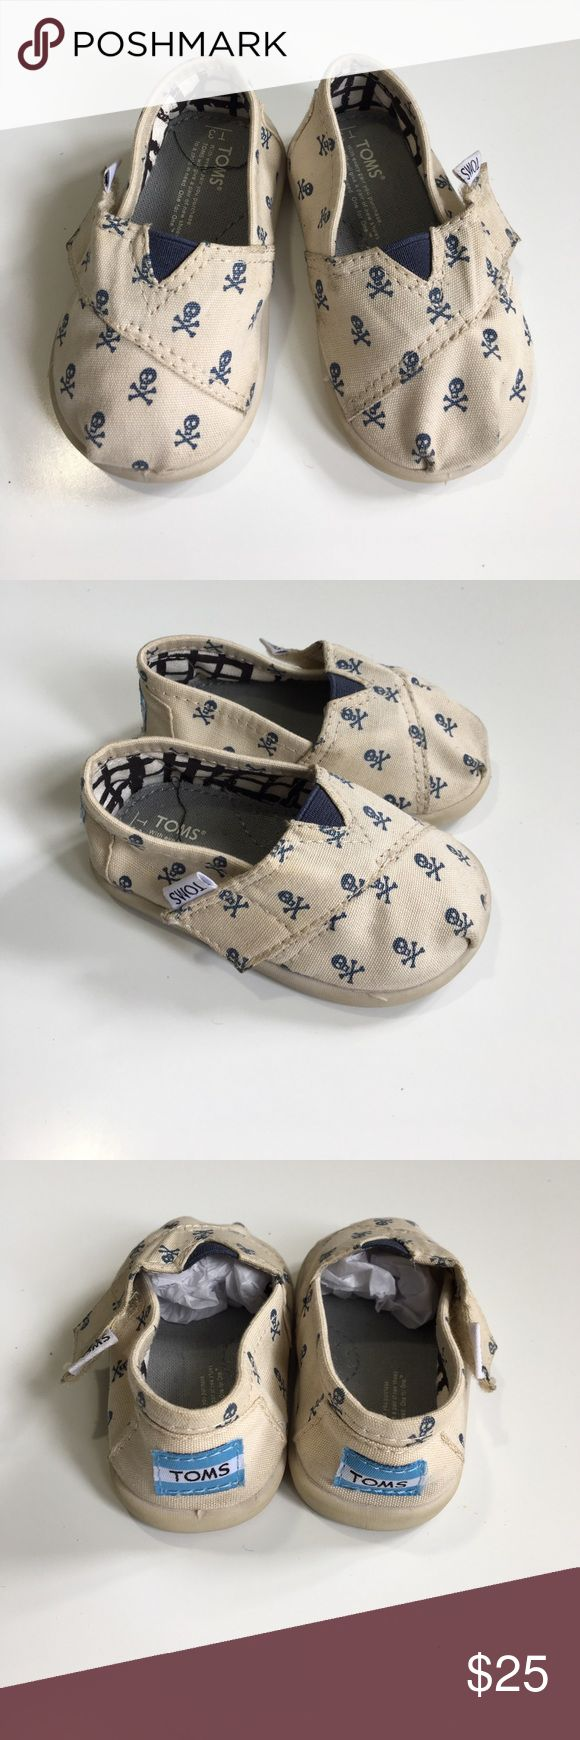 NWOT Tiny Toms Skull Toms. Tried on but never used. Size is T3. No box. TOMS Shoes